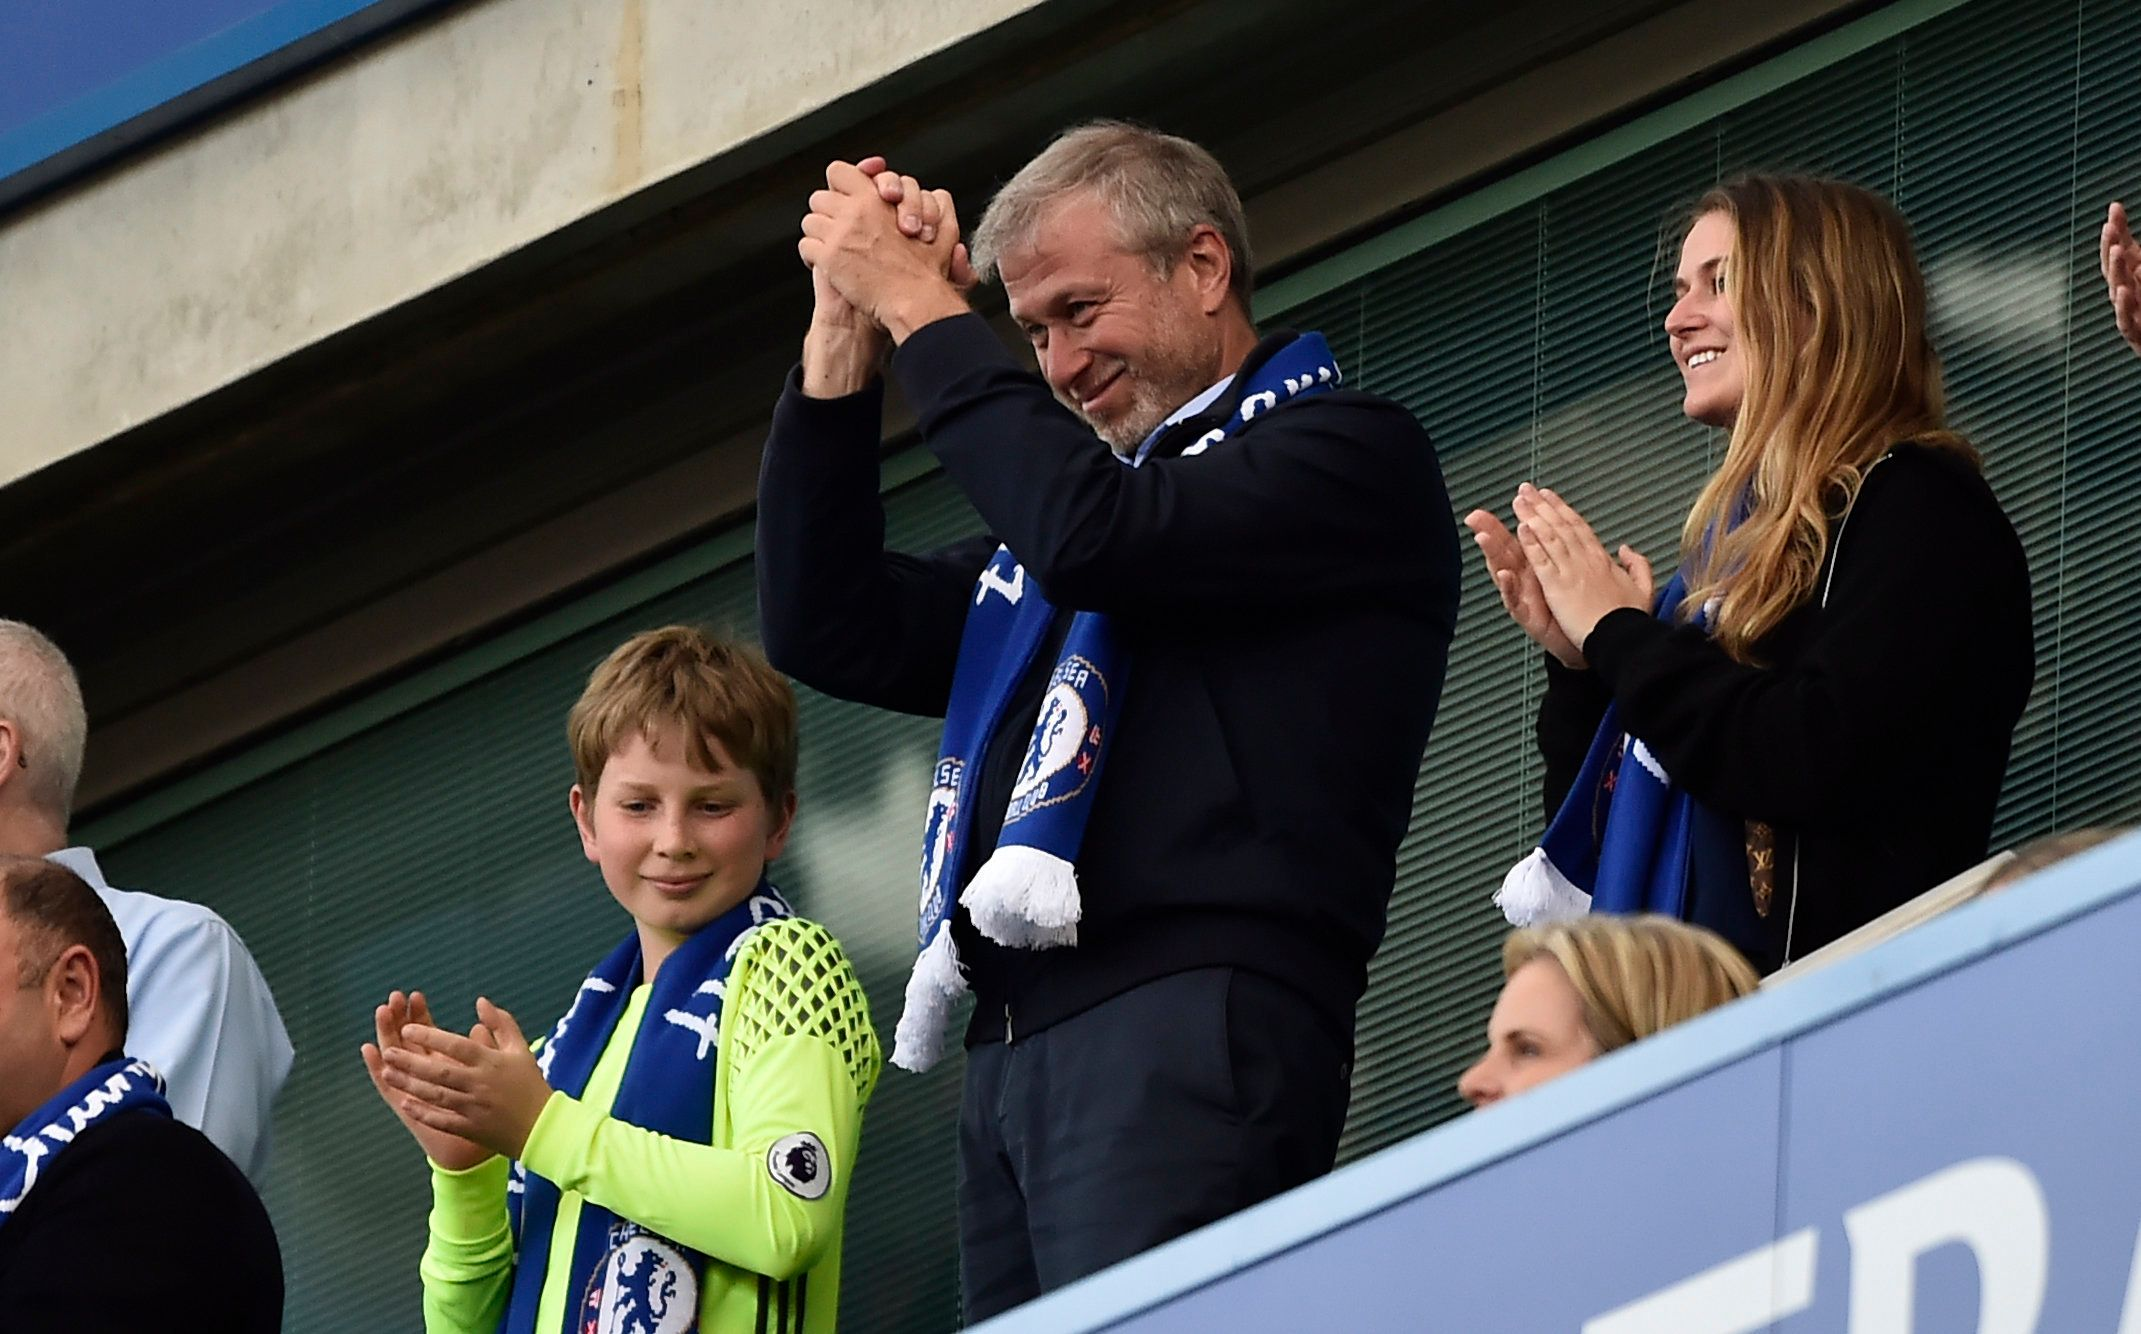 Chelsea Owner Abramovich Takes Israeli Citizenship, Will Move to Tel Aviv